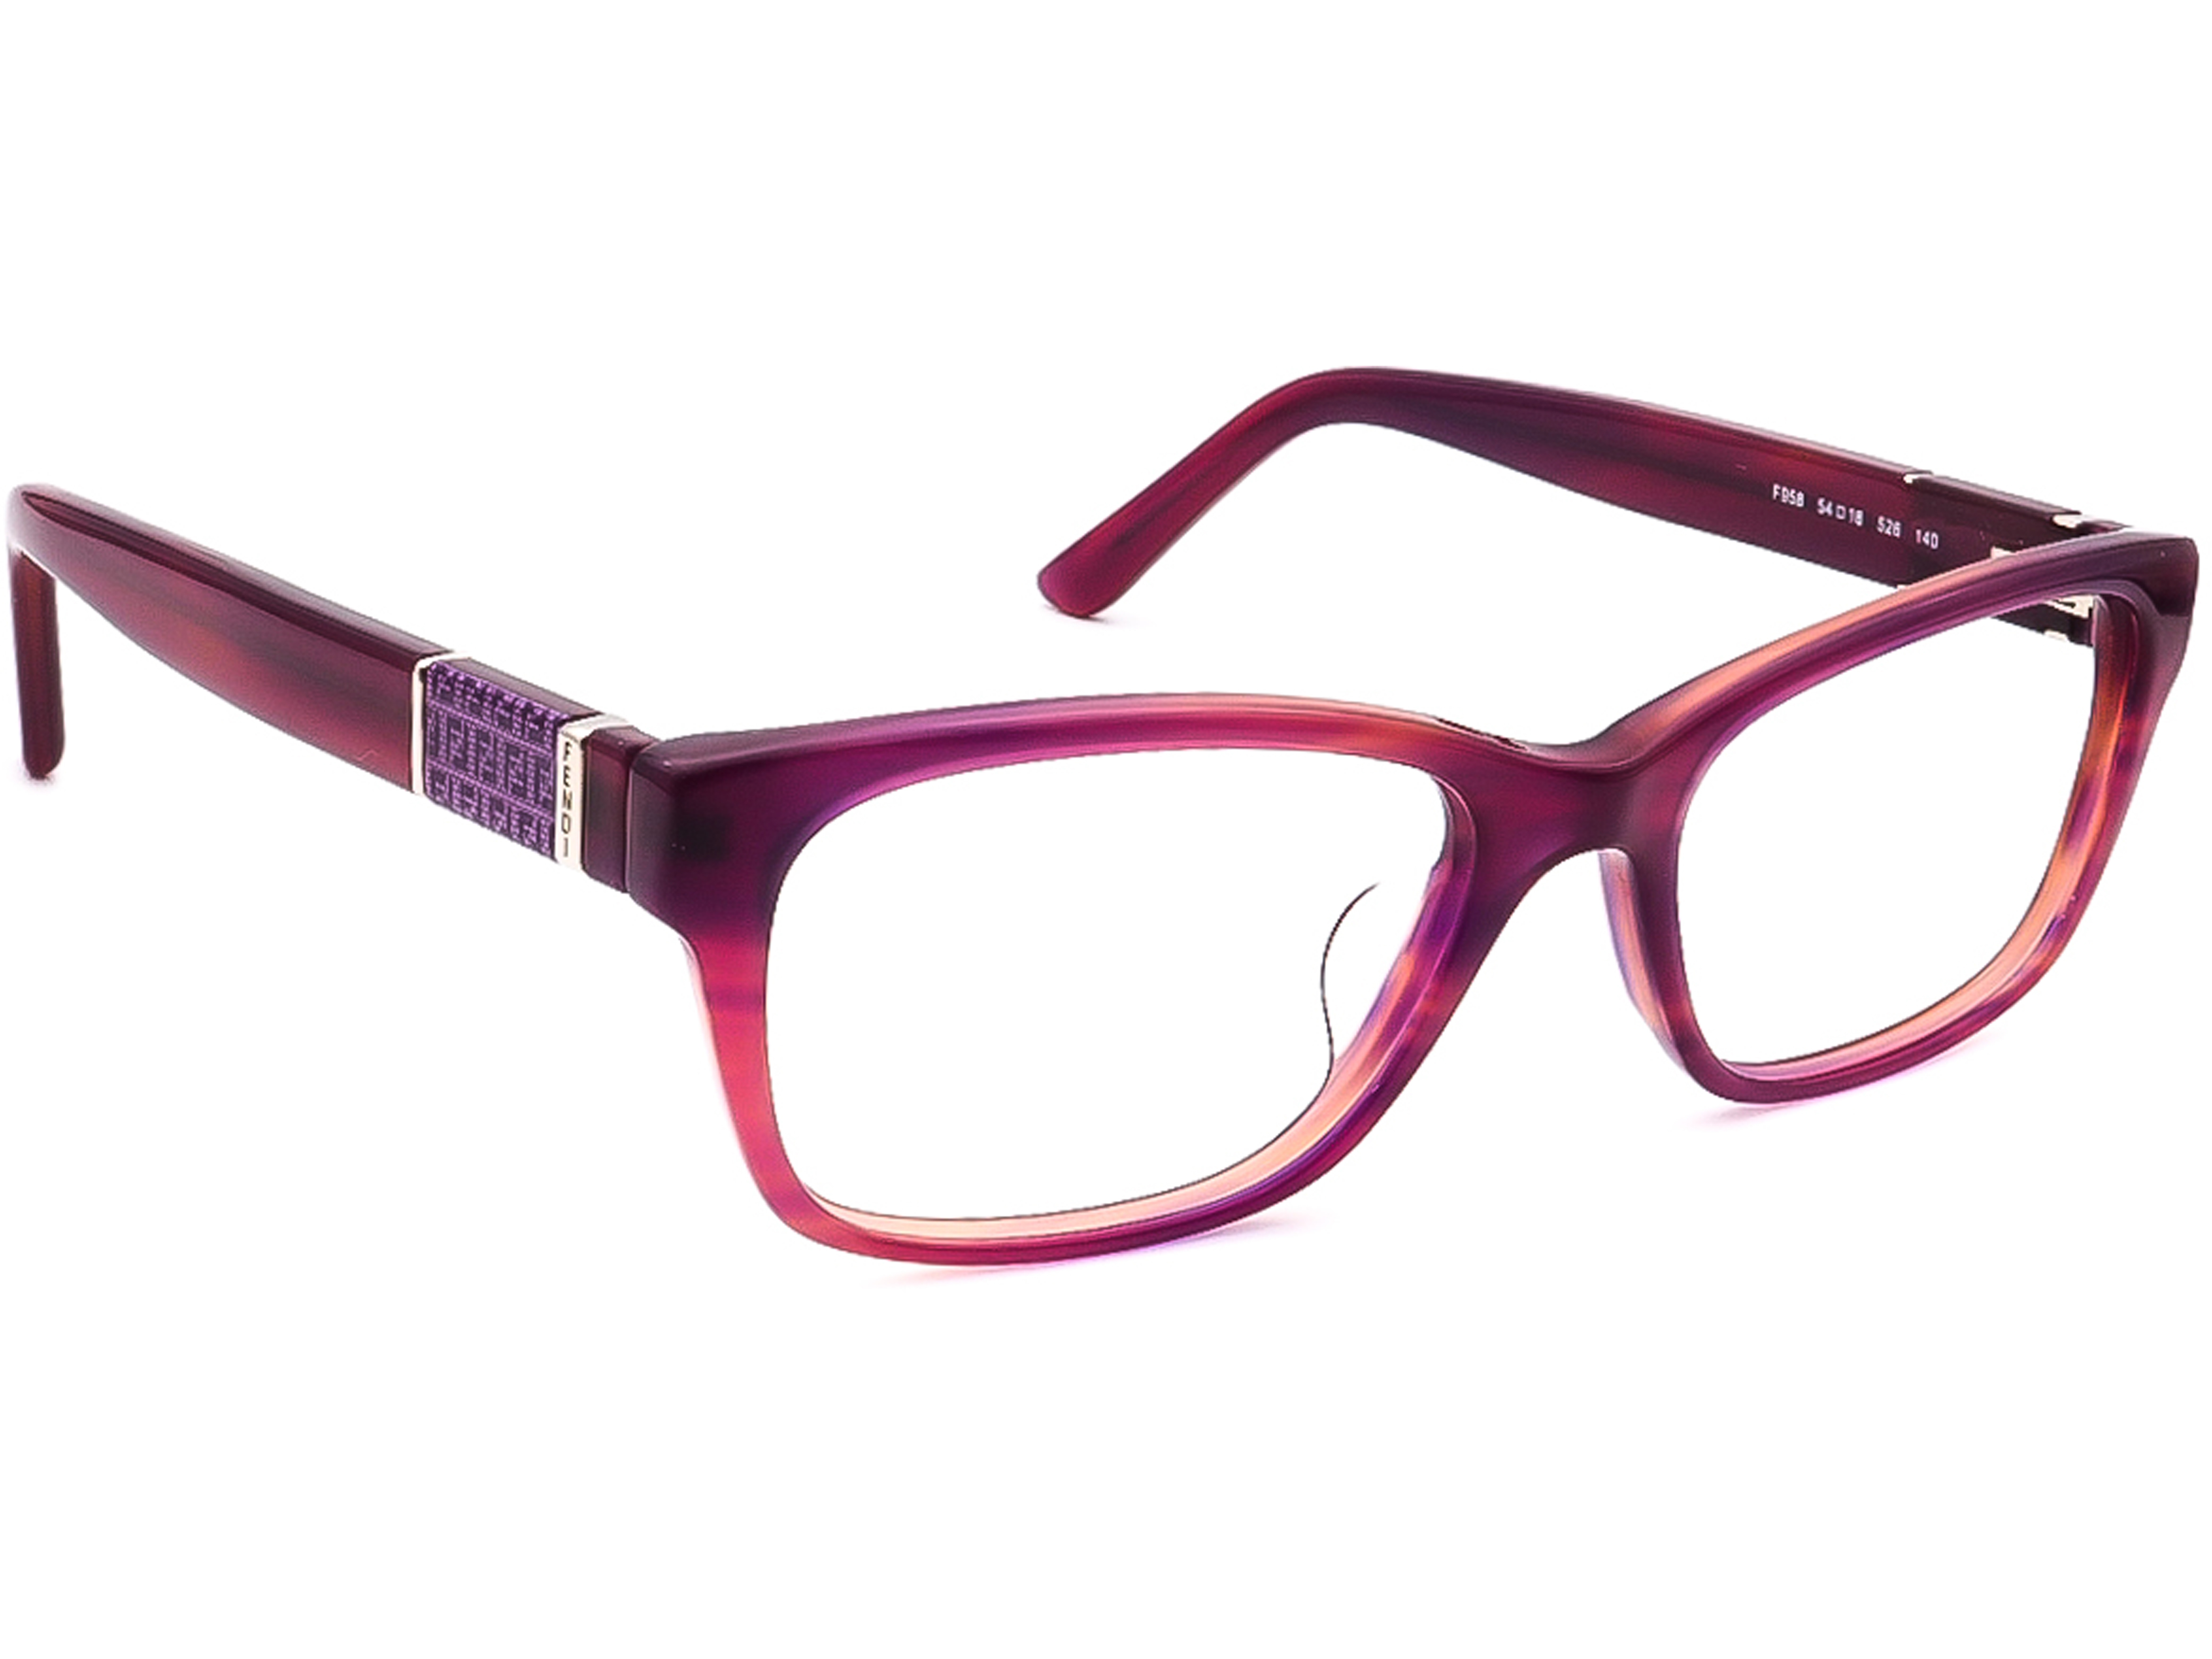 Fendi F958 526 Eyeglasses